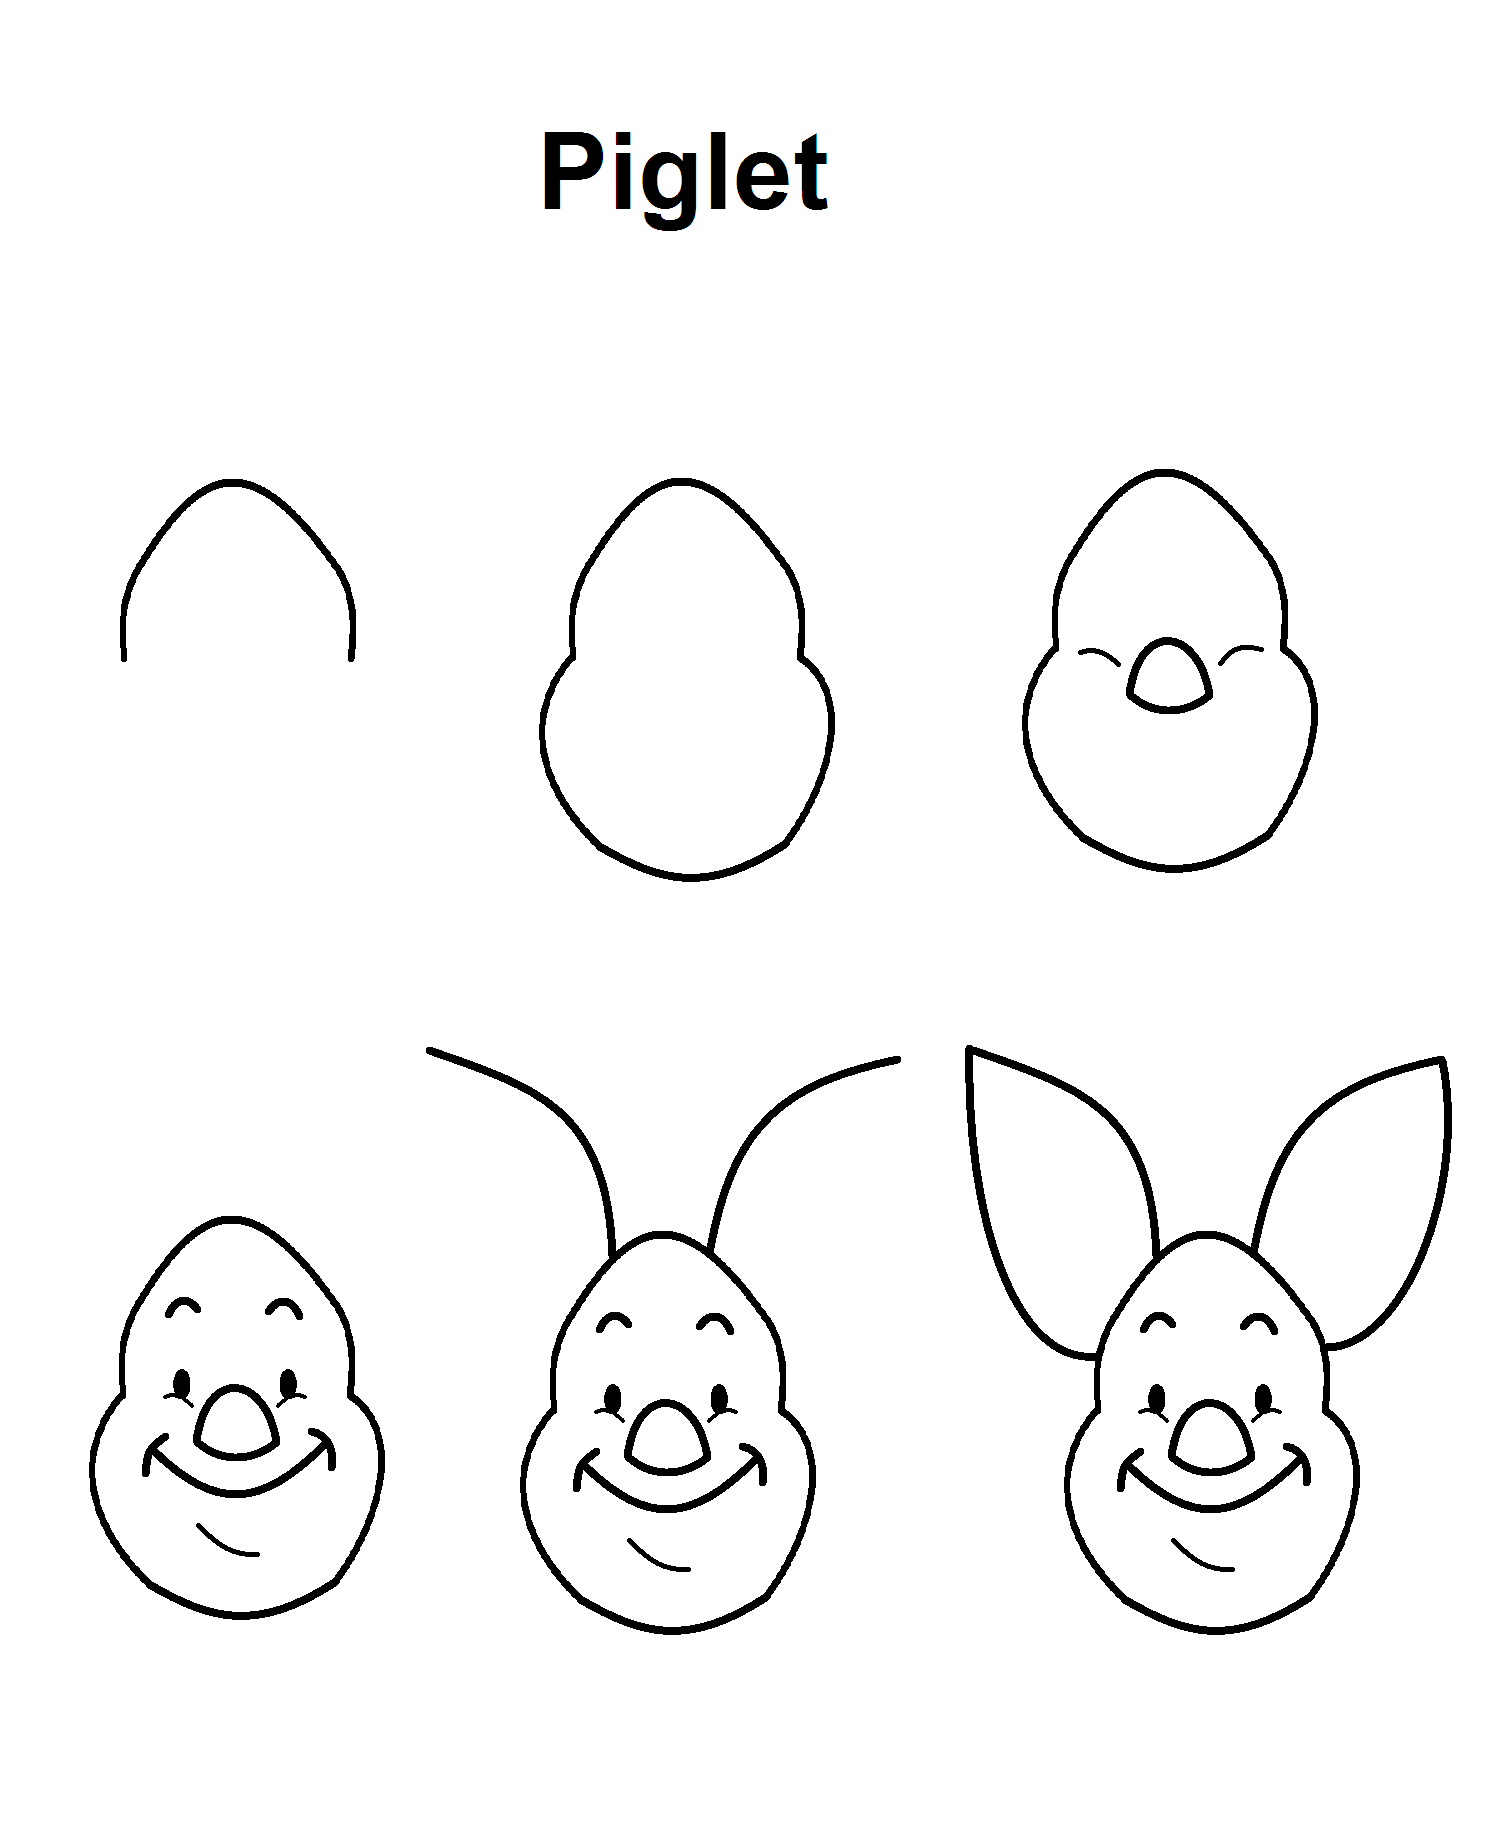 disney characters to draw step by step pin by carol mays on how to draw cartoon drawings characters to disney draw by step step